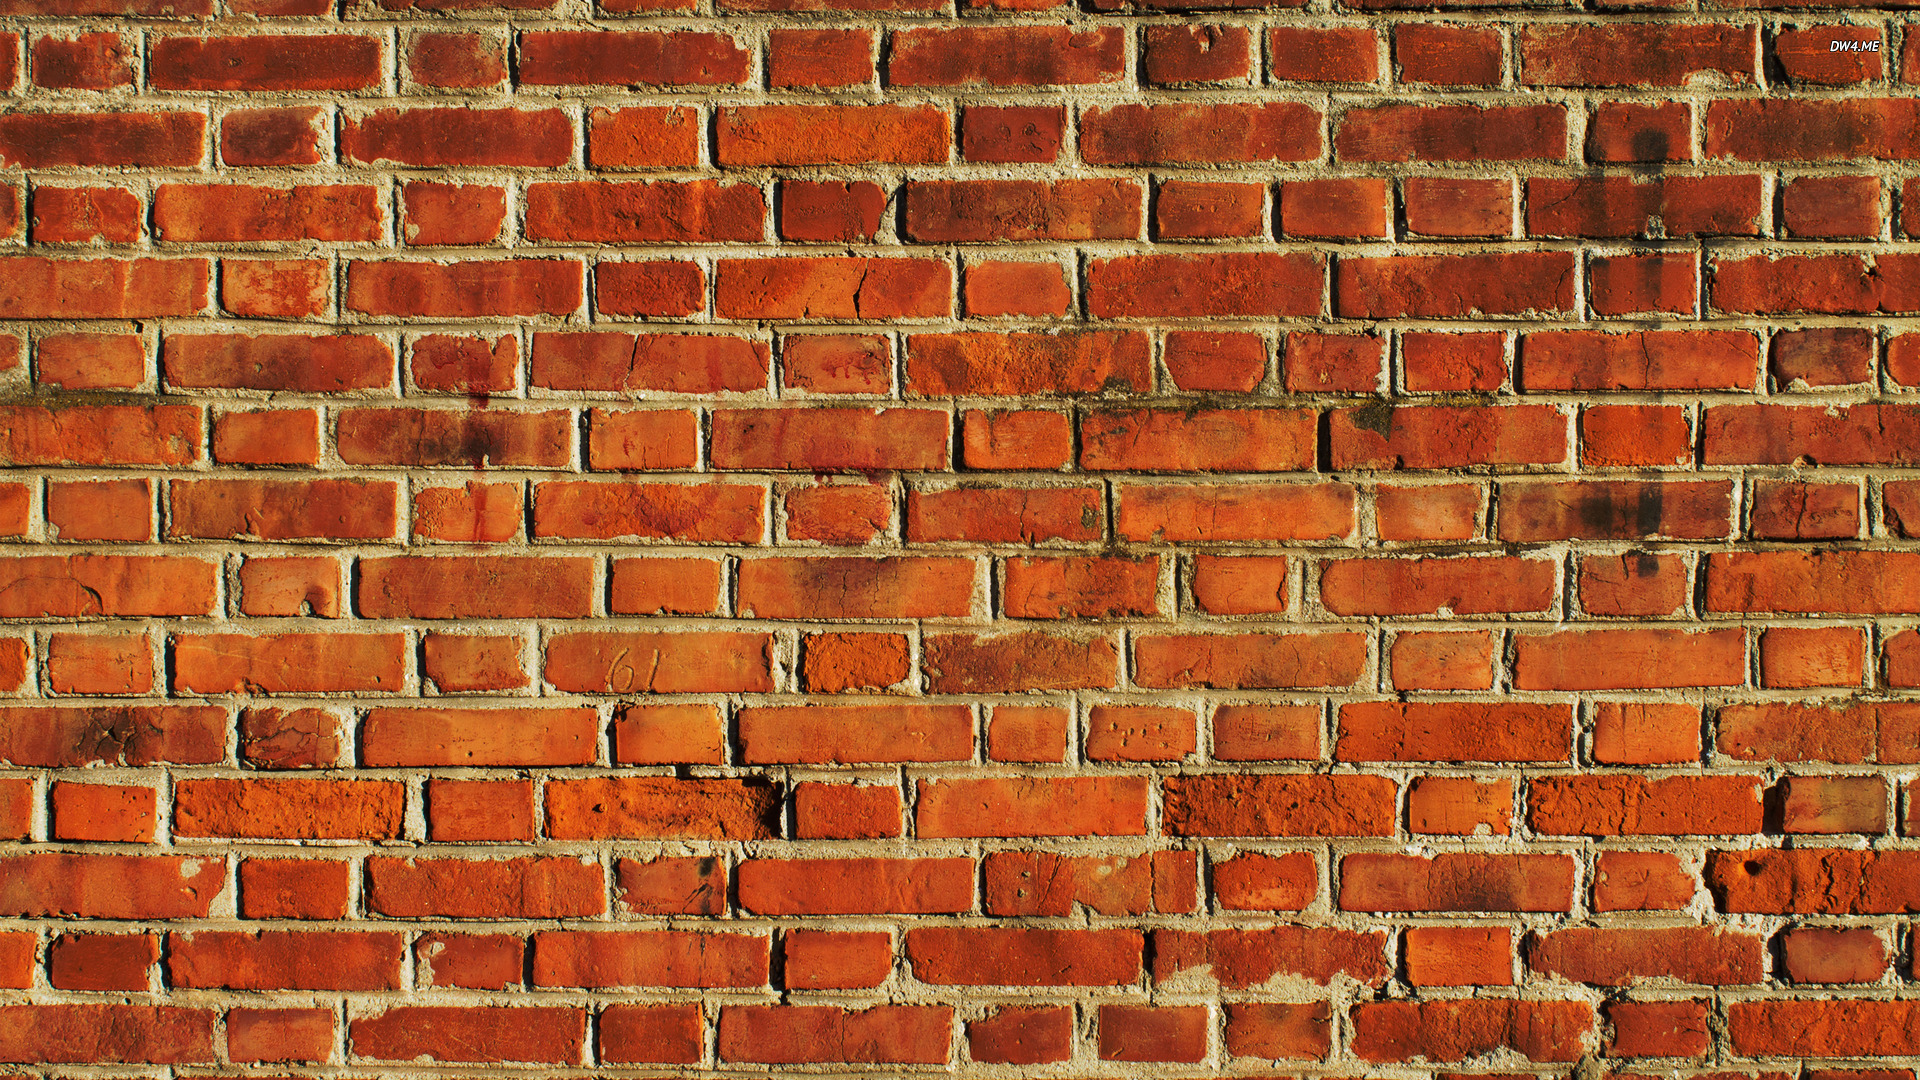 Stone Wall clipart brick wall background Walls com  Design com